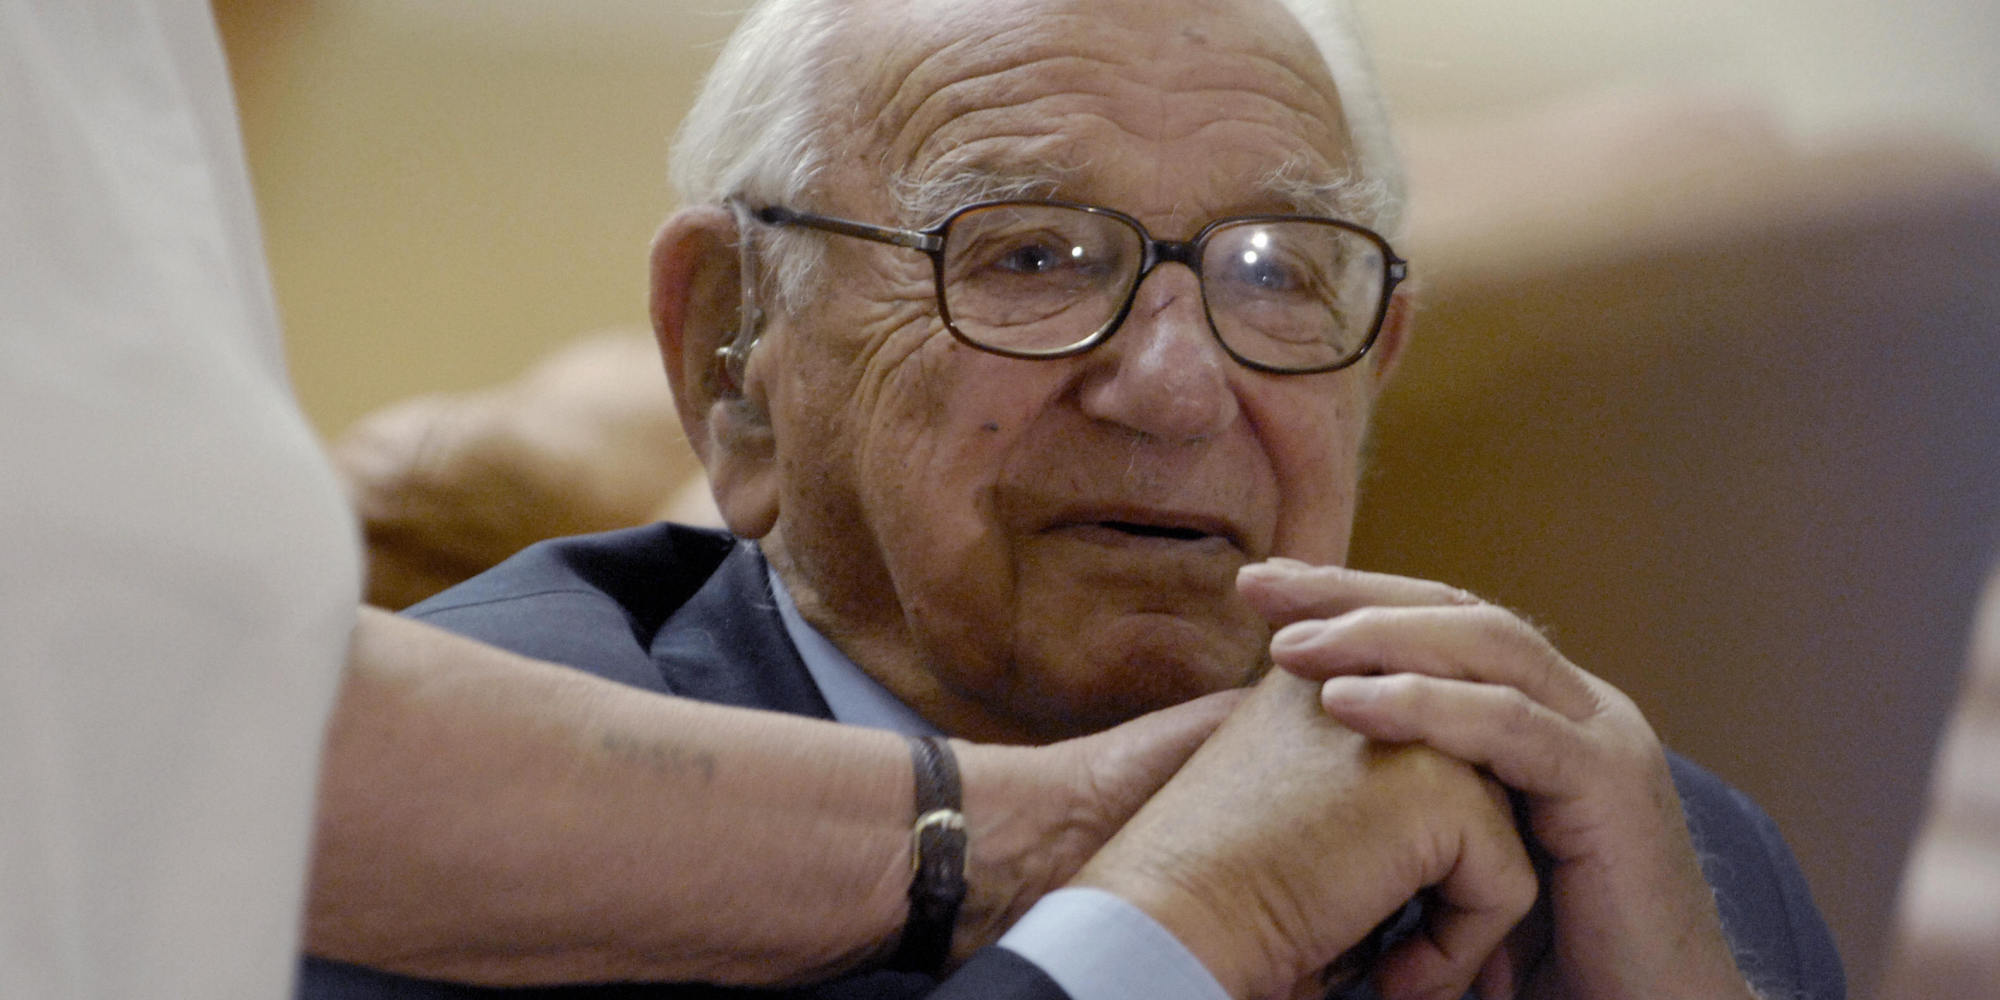 (FILES) -- A file photo taken 09 October 2007 shows British Sir Nicholas Winton in backstage of Prague's Congress Center Hall before a meeting which paid tribute to him after he rescued about 669 mostly Jewish Czech children from their doomed fate in the Nazi death camps prior to the outbreak of World War II in an operation known as the Czech Kindertransport. Winton, 98, has been admitted to the coronary department of a Prague hospital, the agency CTK reported 14 October 2007. Winton's condition worsened during a week-long visit to the Czech Republic, where the evacuations took place, the tabloid Blesk said. AFP PHOTO/ MICHAL CIZEK (Photo credit should read MICHAL CIZEK/AFP/Getty Images)